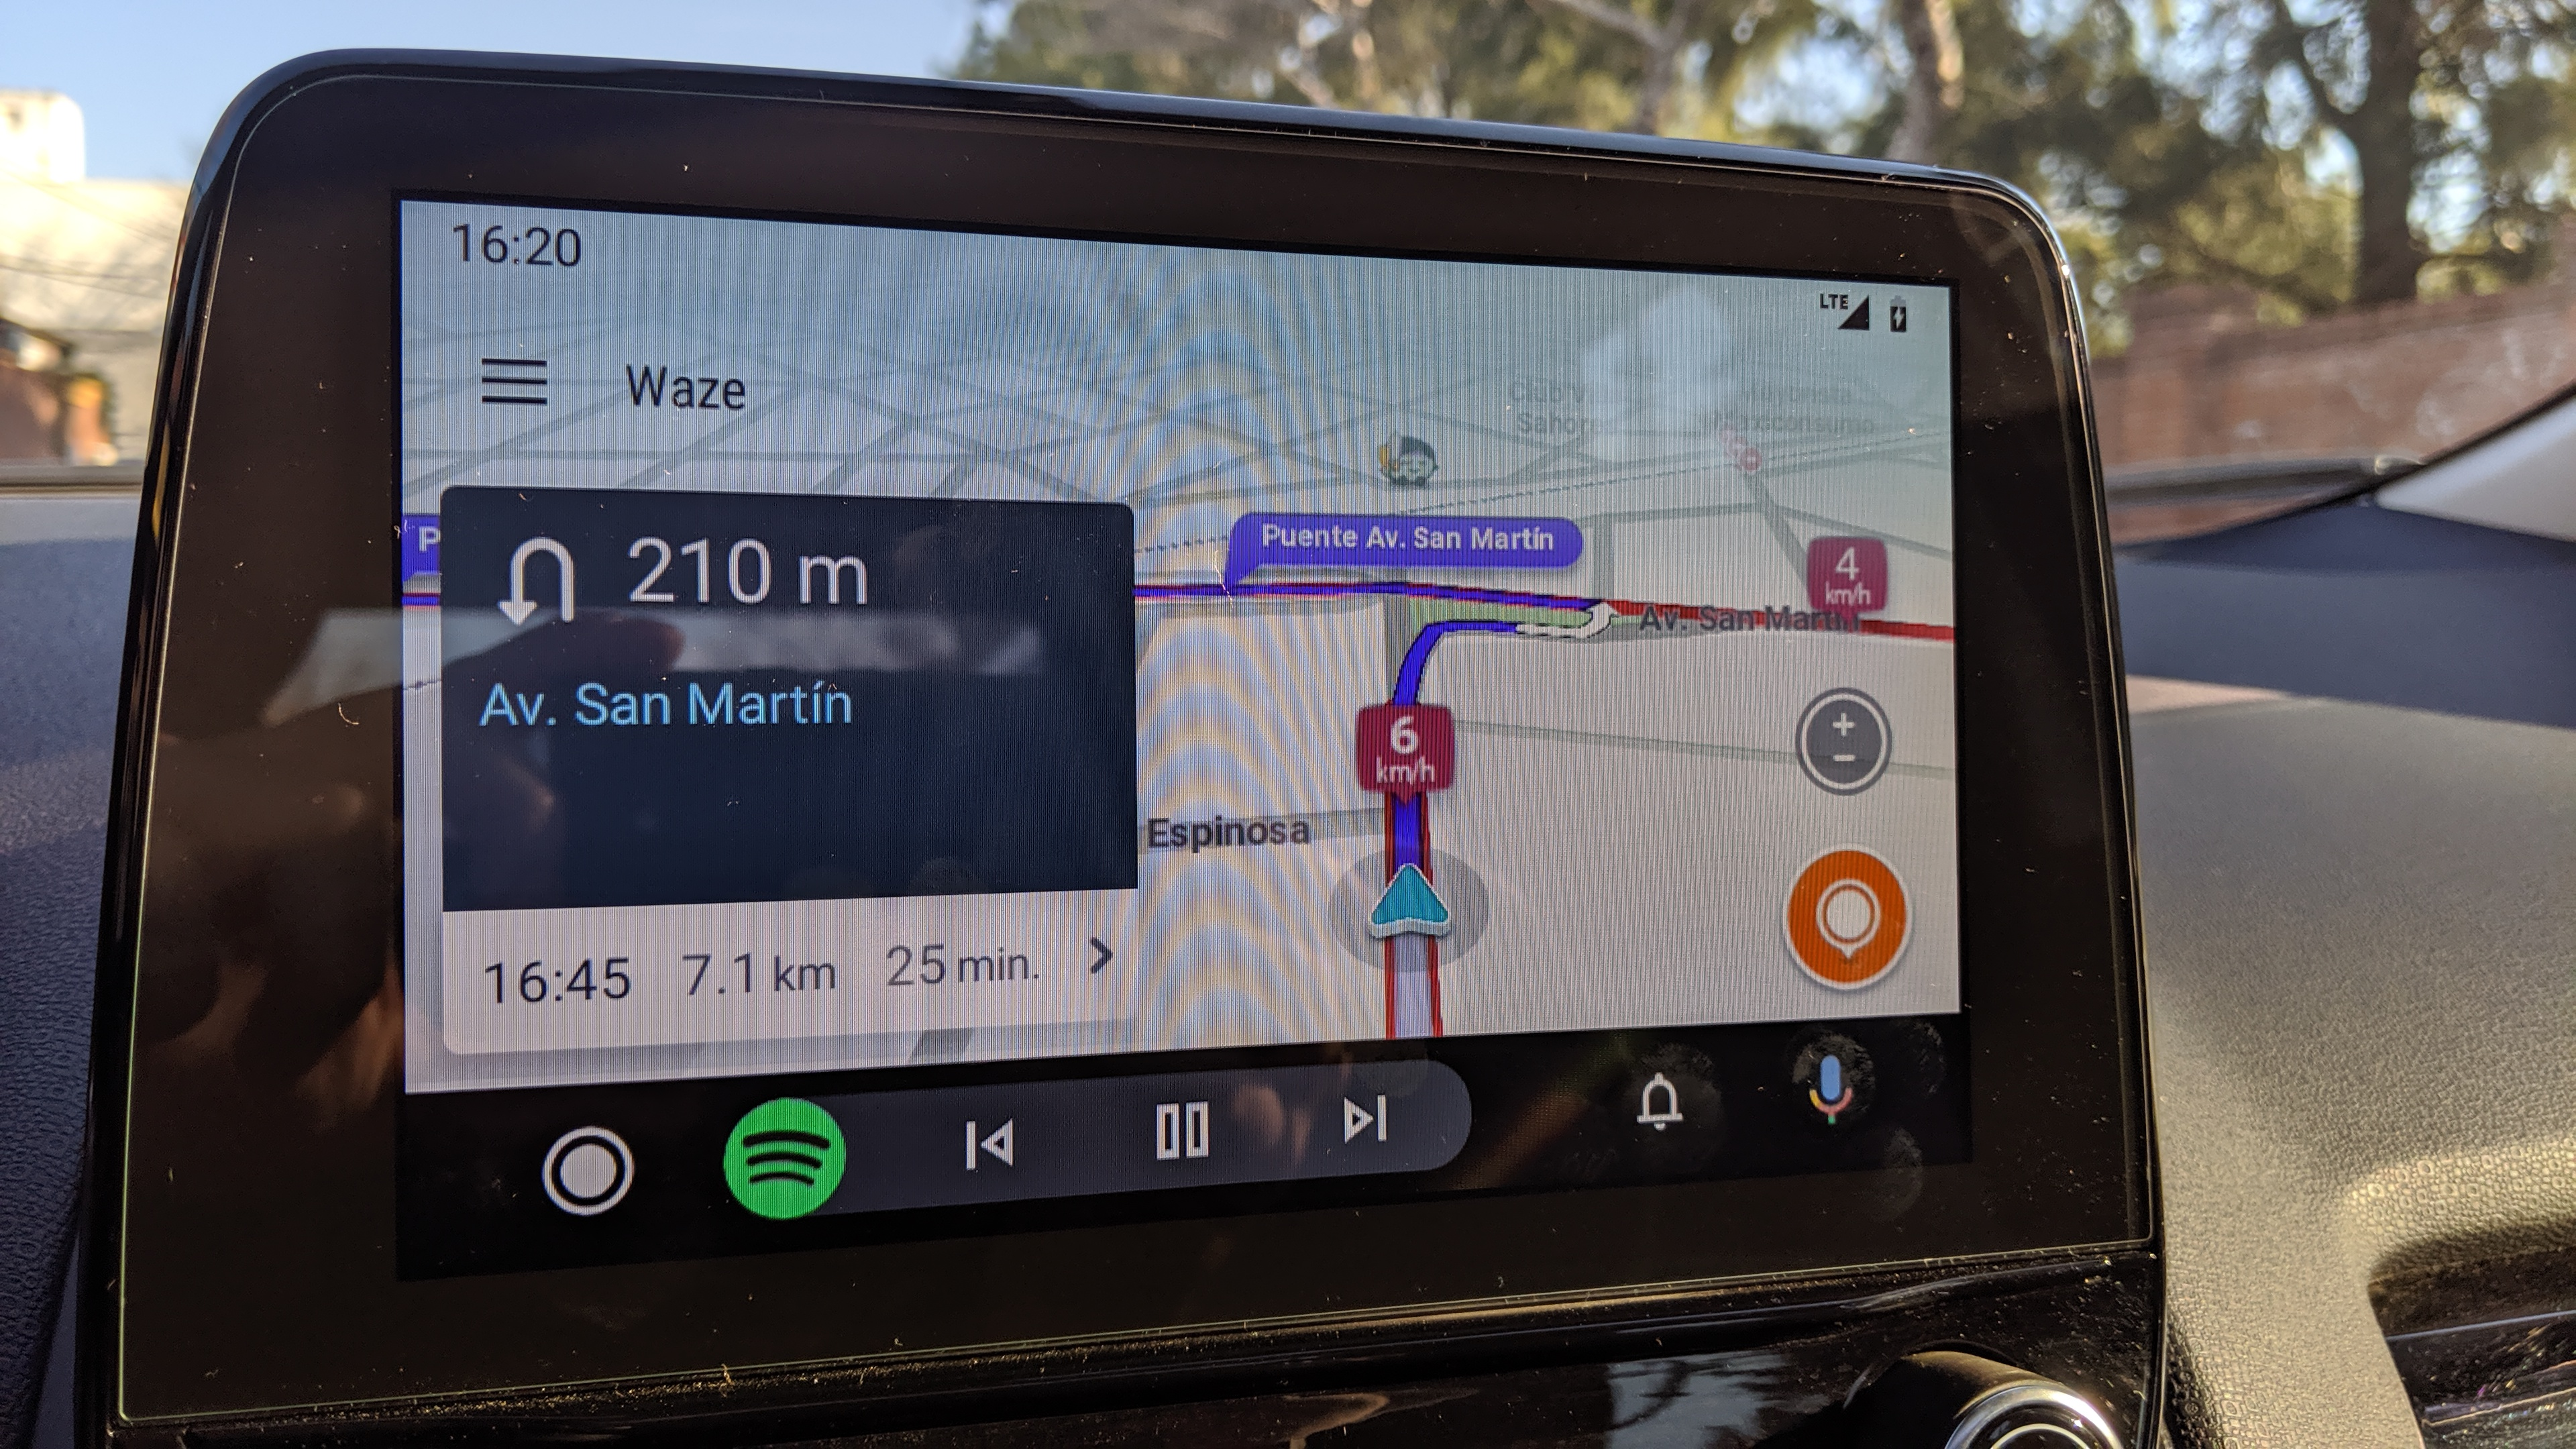 Top bar reducing tapeable area - Android Auto Help